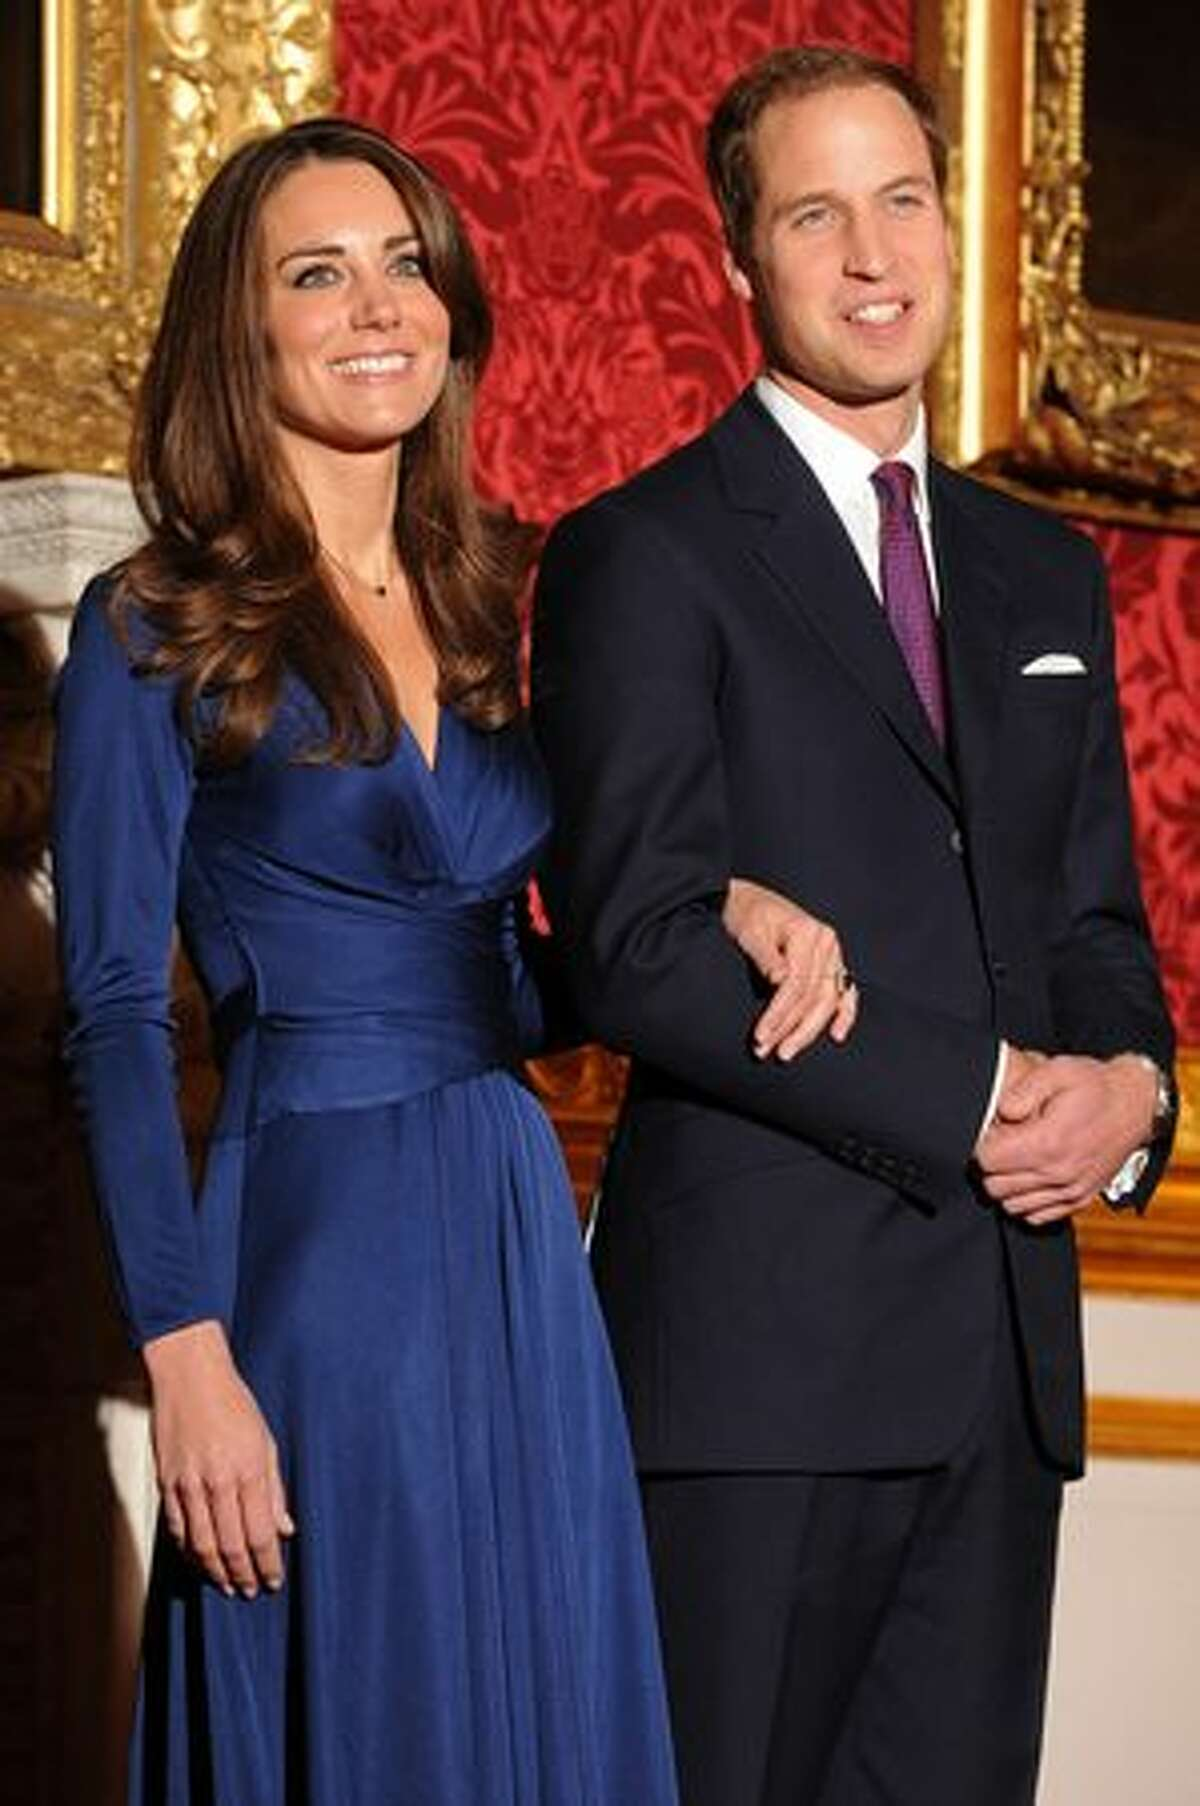 Britain's Prince William and his fiancée Kate Middleton pose for photographers during a photocall to mark their engagement in the State Rooms of St James's Palace, London, on Nov. 16, 2010. Prince William will marry his girlfriend Kate Middleton next year, the royal family said, in the biggest royal wedding in Britain since his parents Charles and Diana married in 1981. The announcement ended feverish speculation about when the second-in-line to the throne would wed, after a romance that has already lasted nearly eight years.